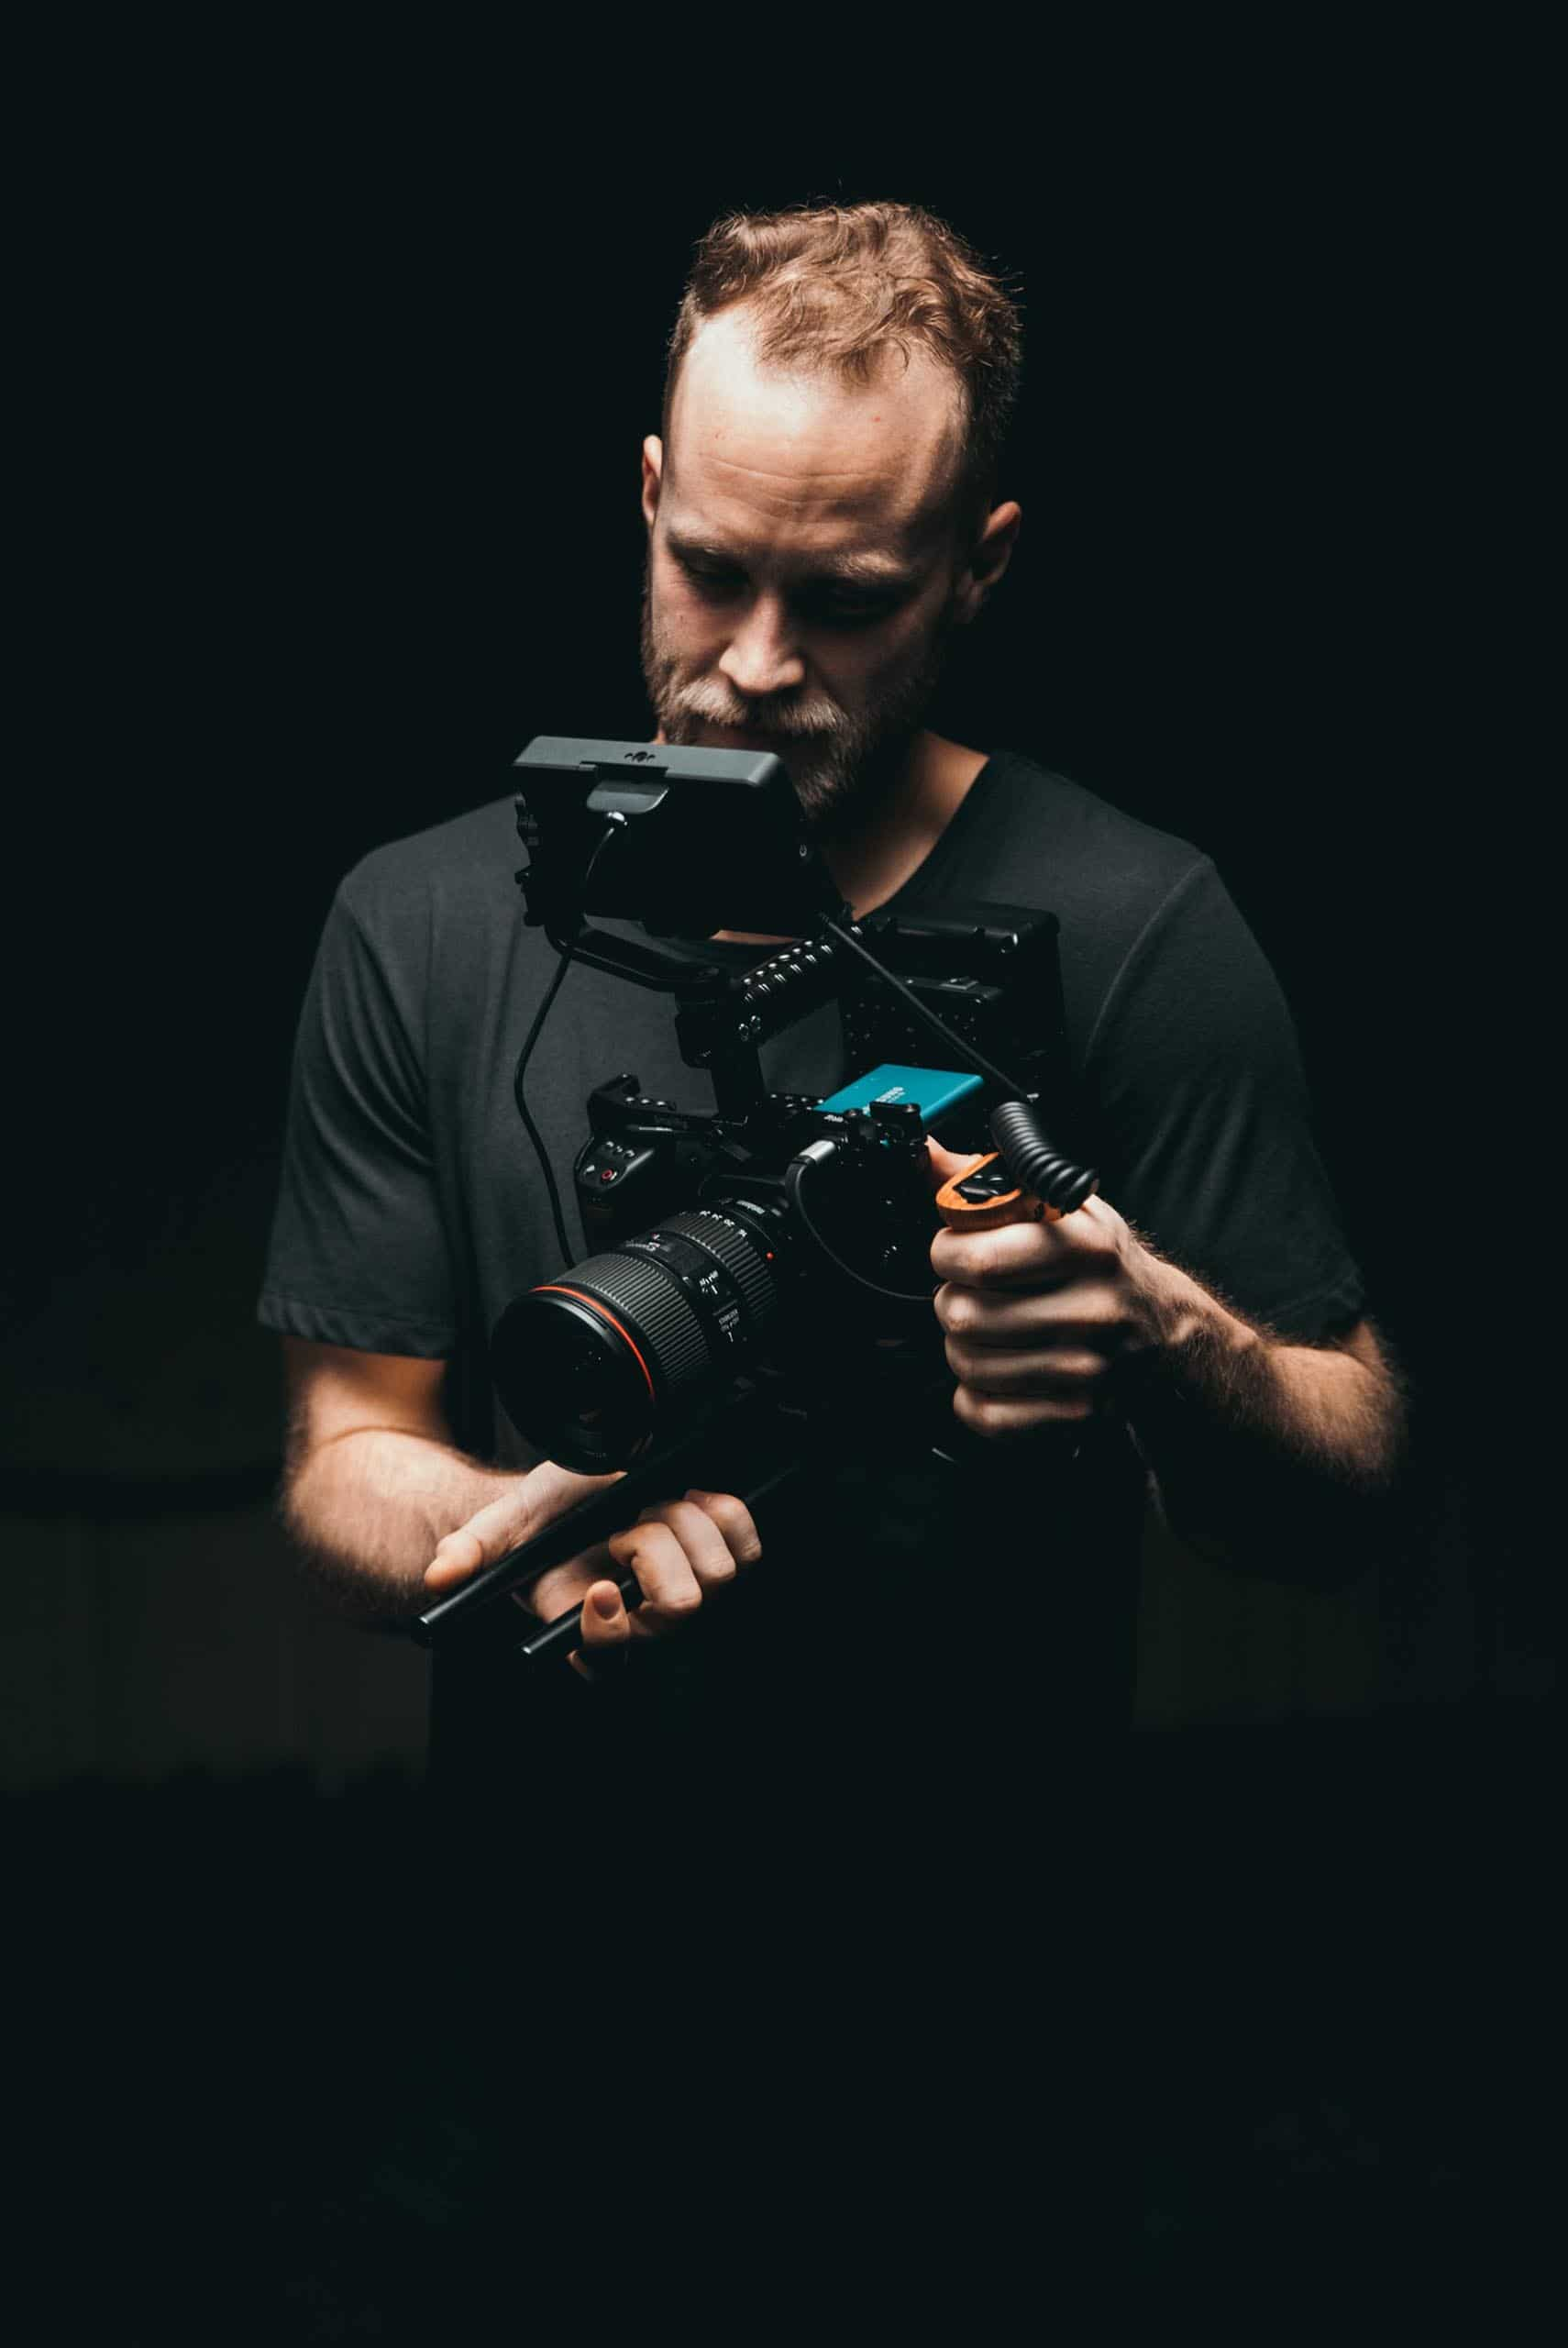 Middle aged man with a video production camera, standing by a black background.